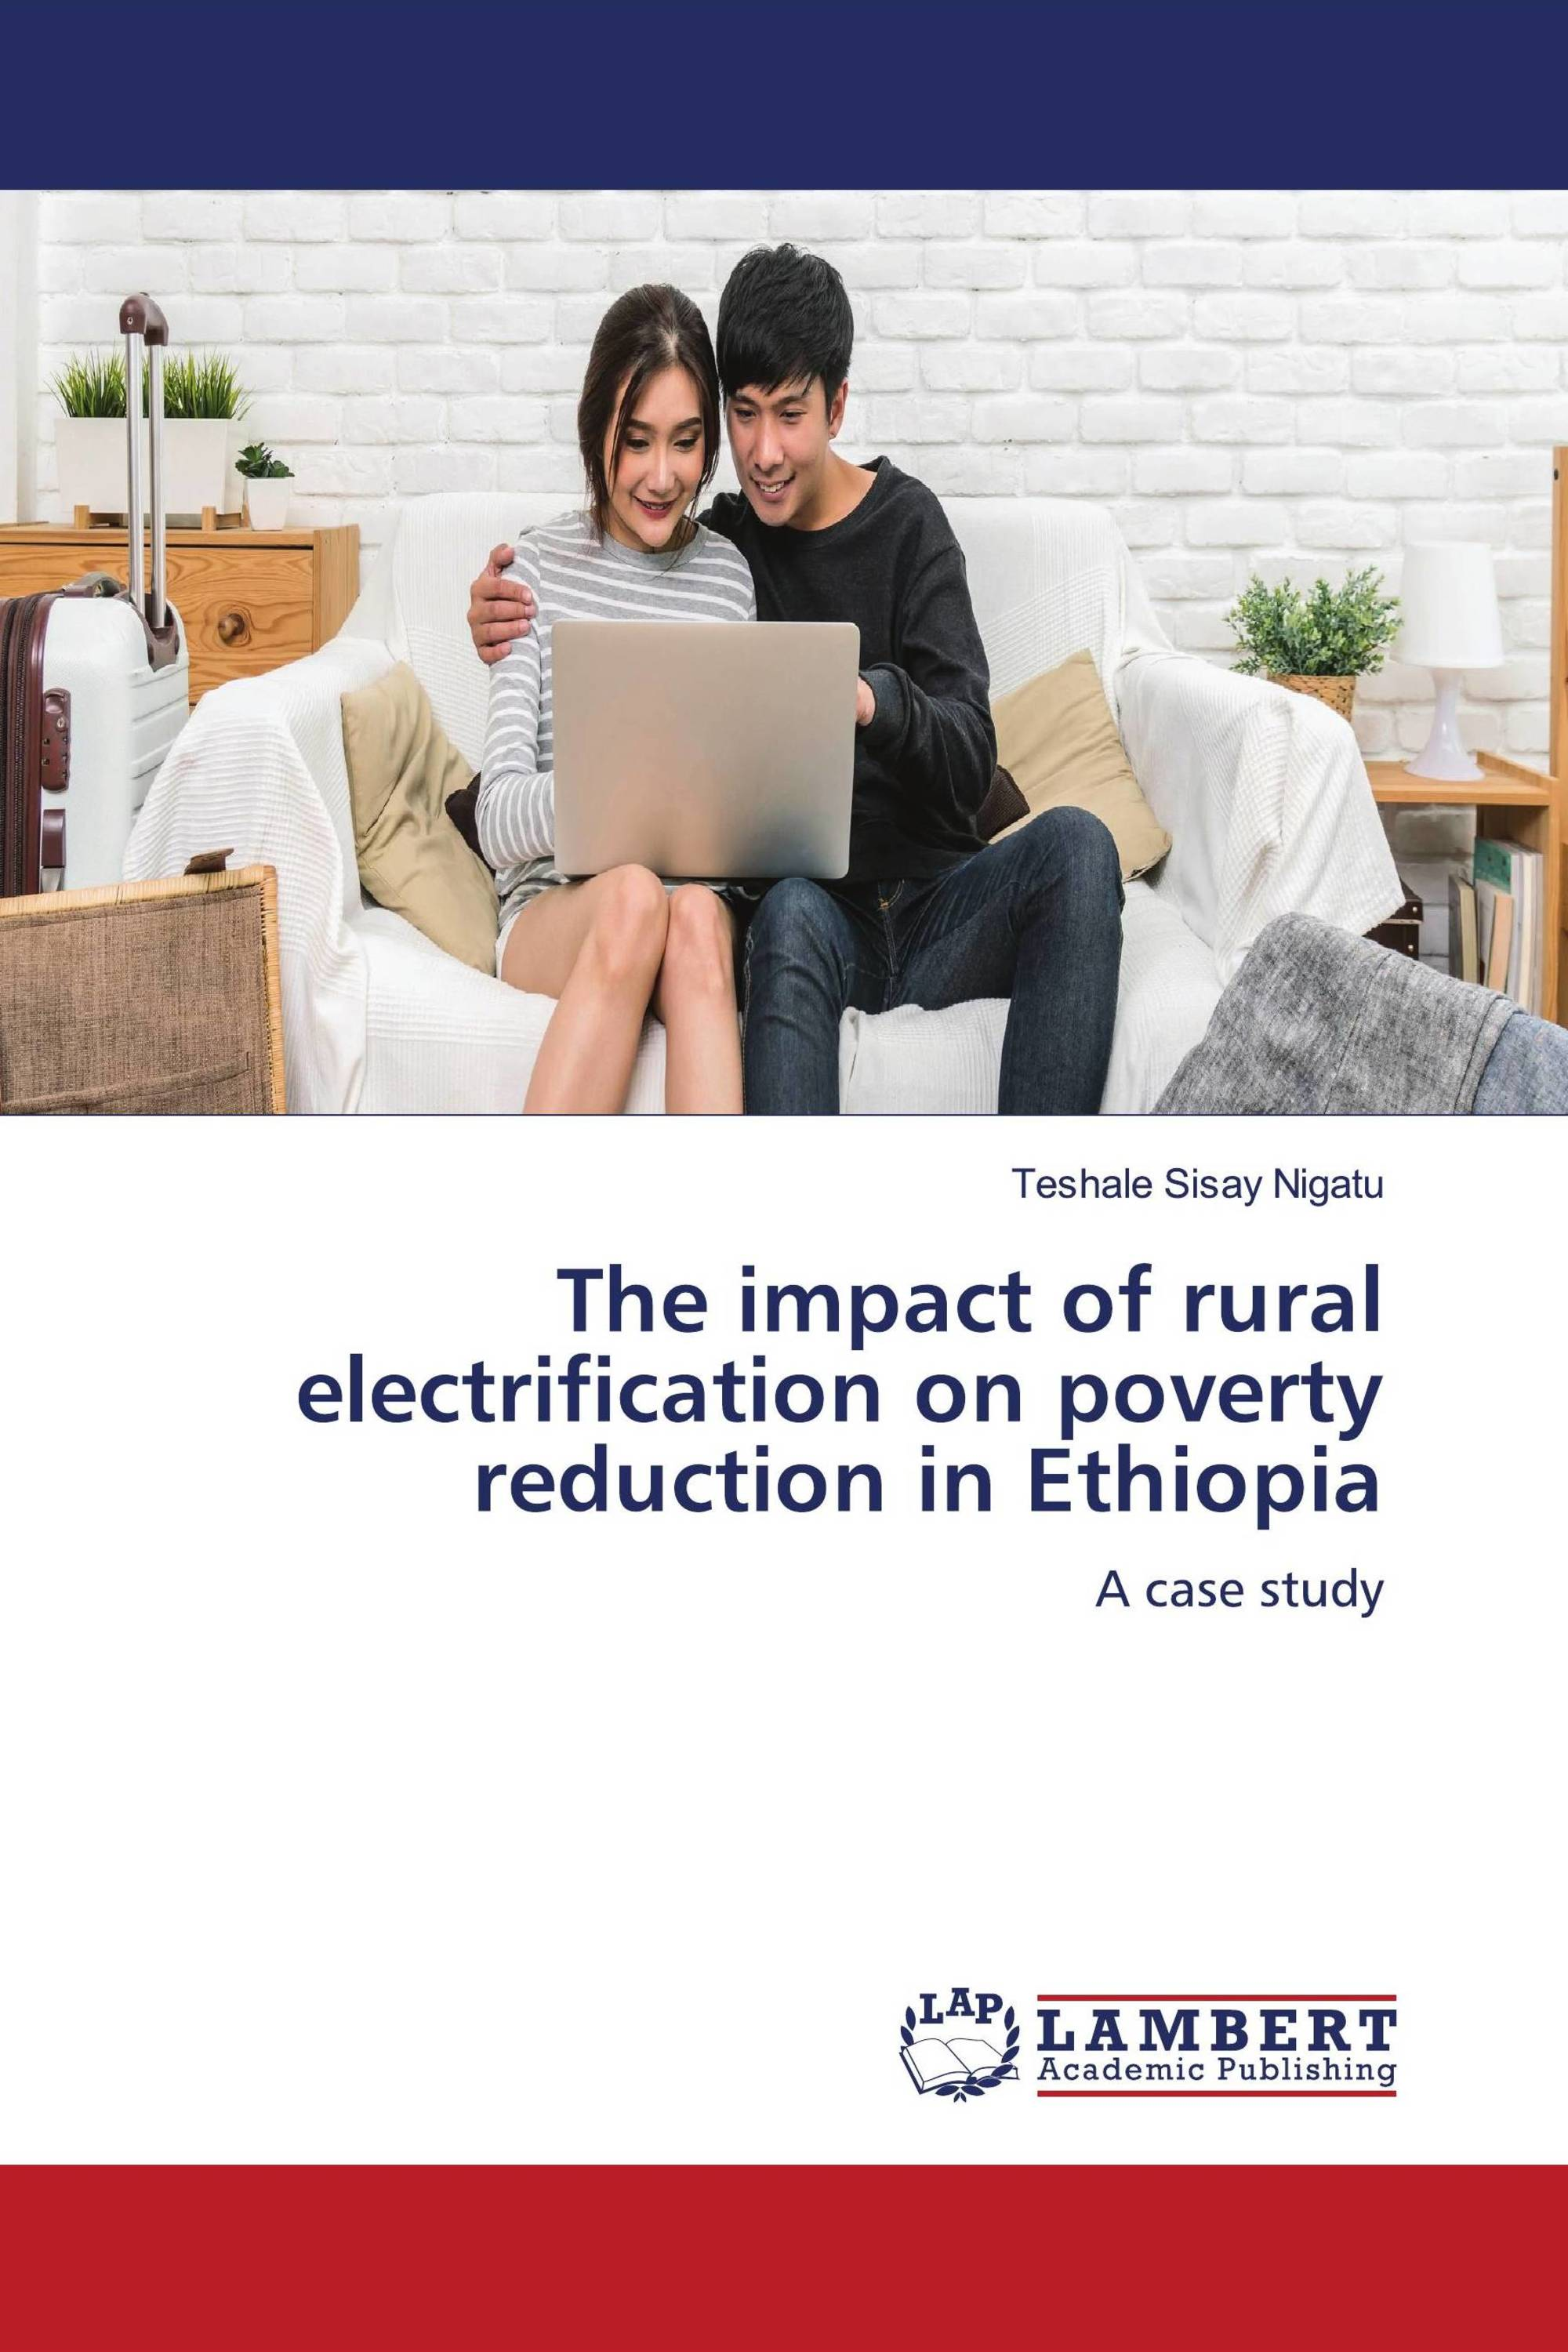 The impact of rural electrification on poverty reduction in Ethiopia